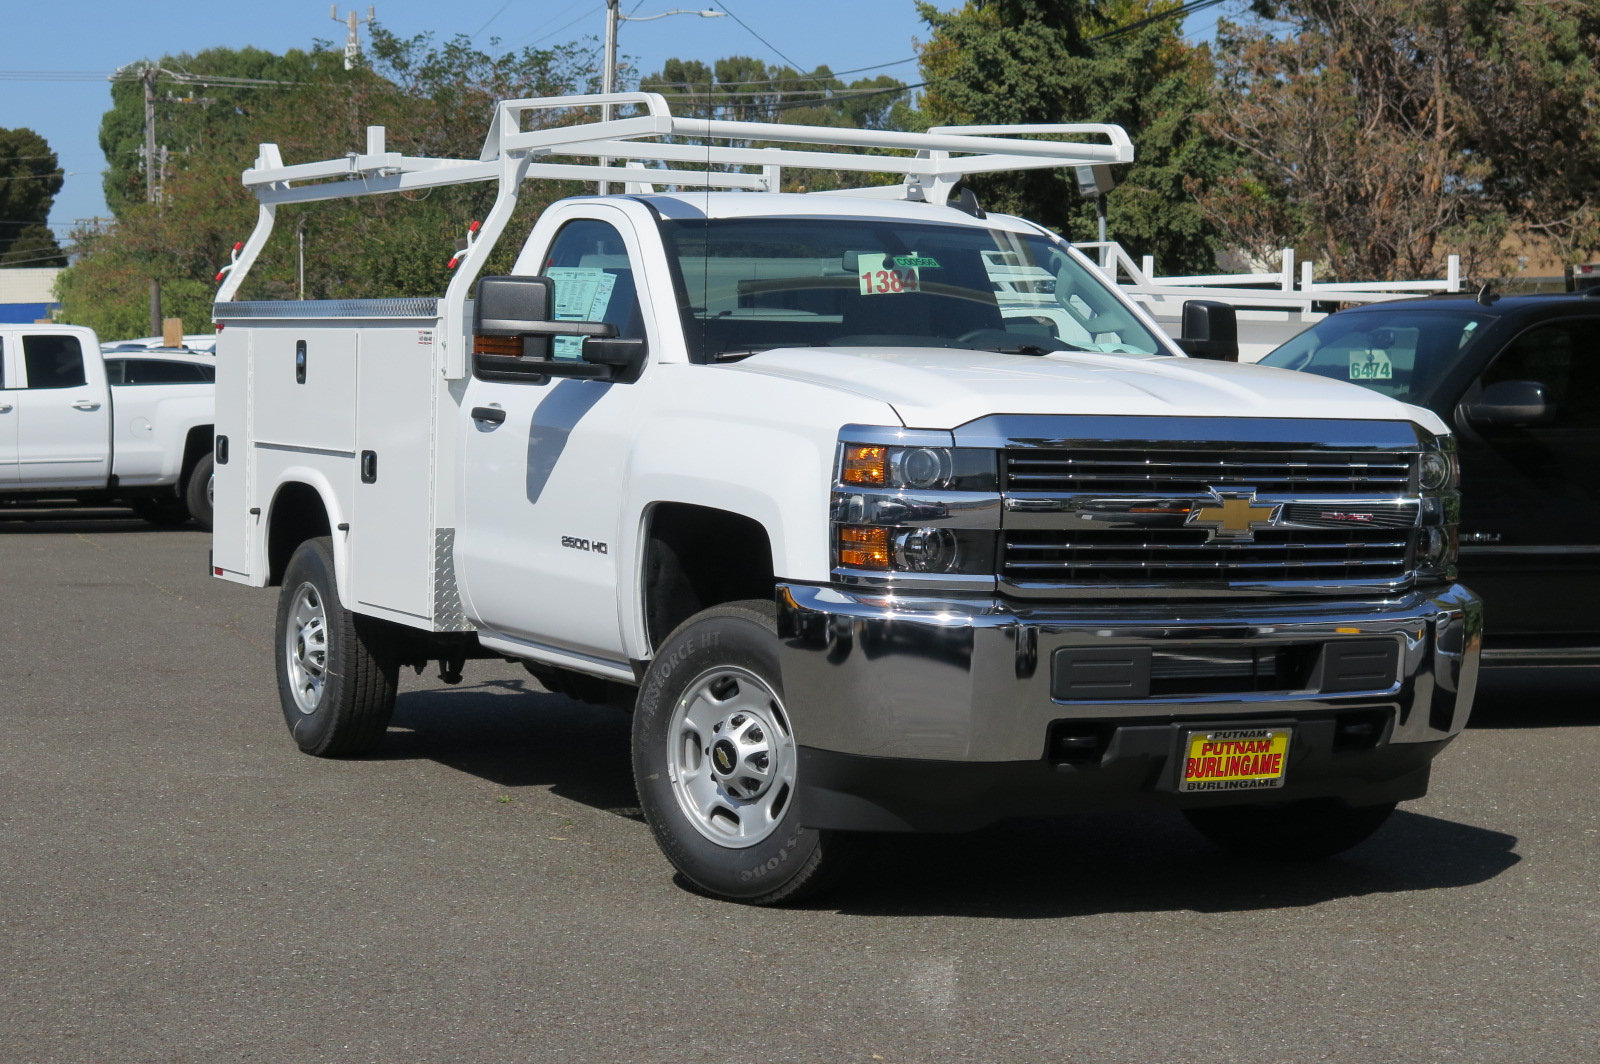 Truck chevy 2500hd trucks : New 2018 Chevrolet Silverado 2500 Regular Cab, Service Body | For ...